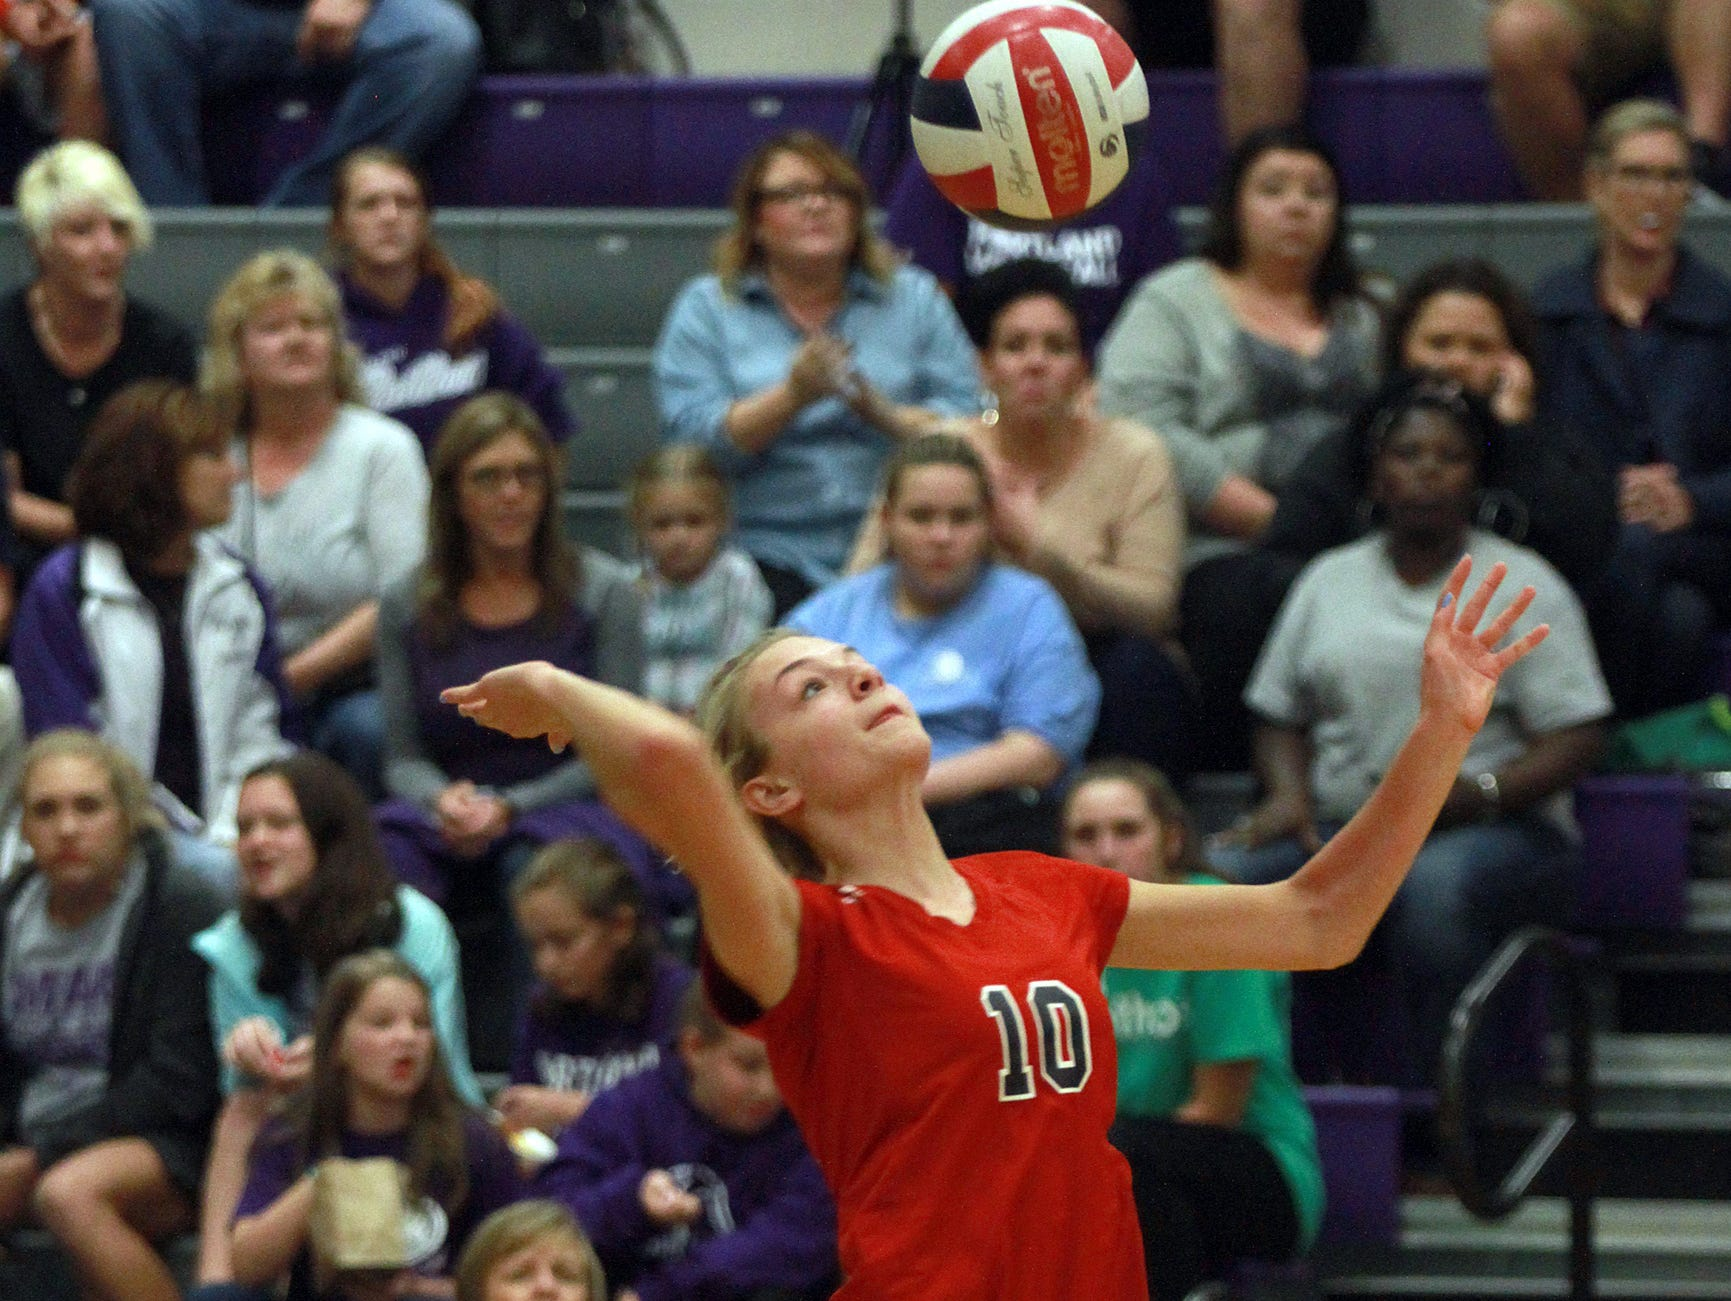 Ravenwood's Victoria Cerino serves against Portland during Thursday's Class AAA sectional match.